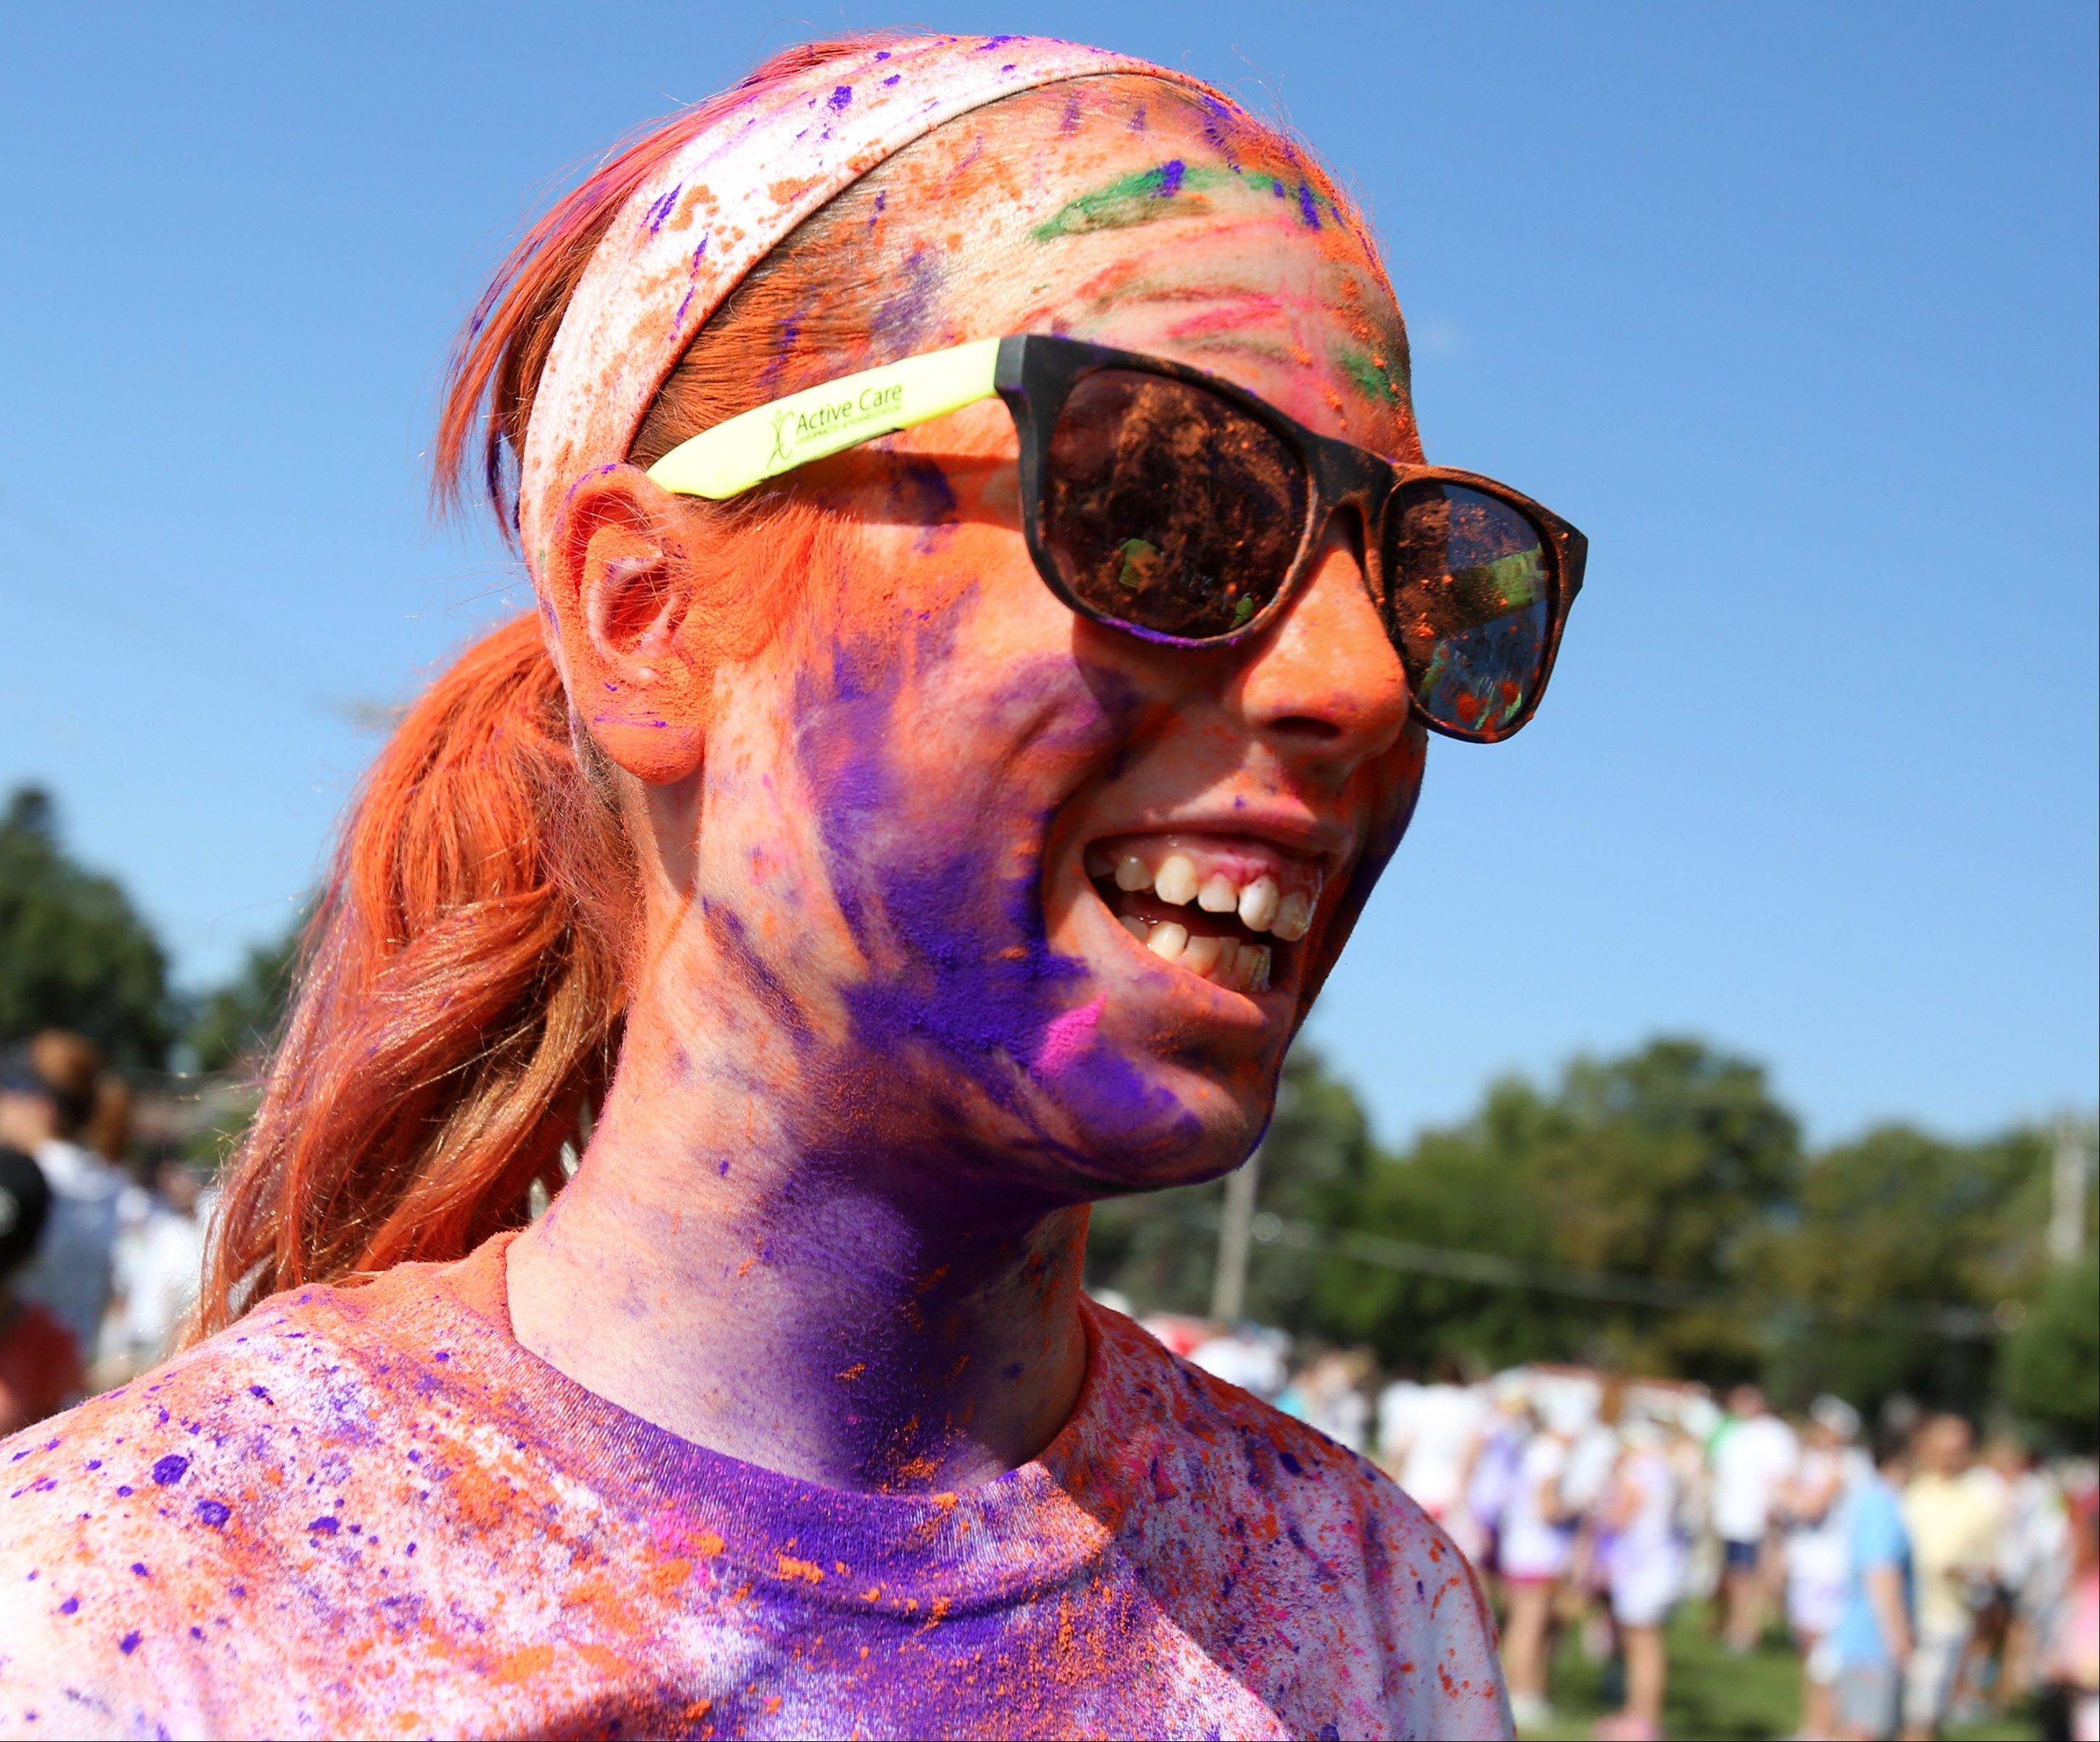 Paige Schulz, 13, Cary, was covered in colored power before the start of the first Active Care Color Blast 5K run.